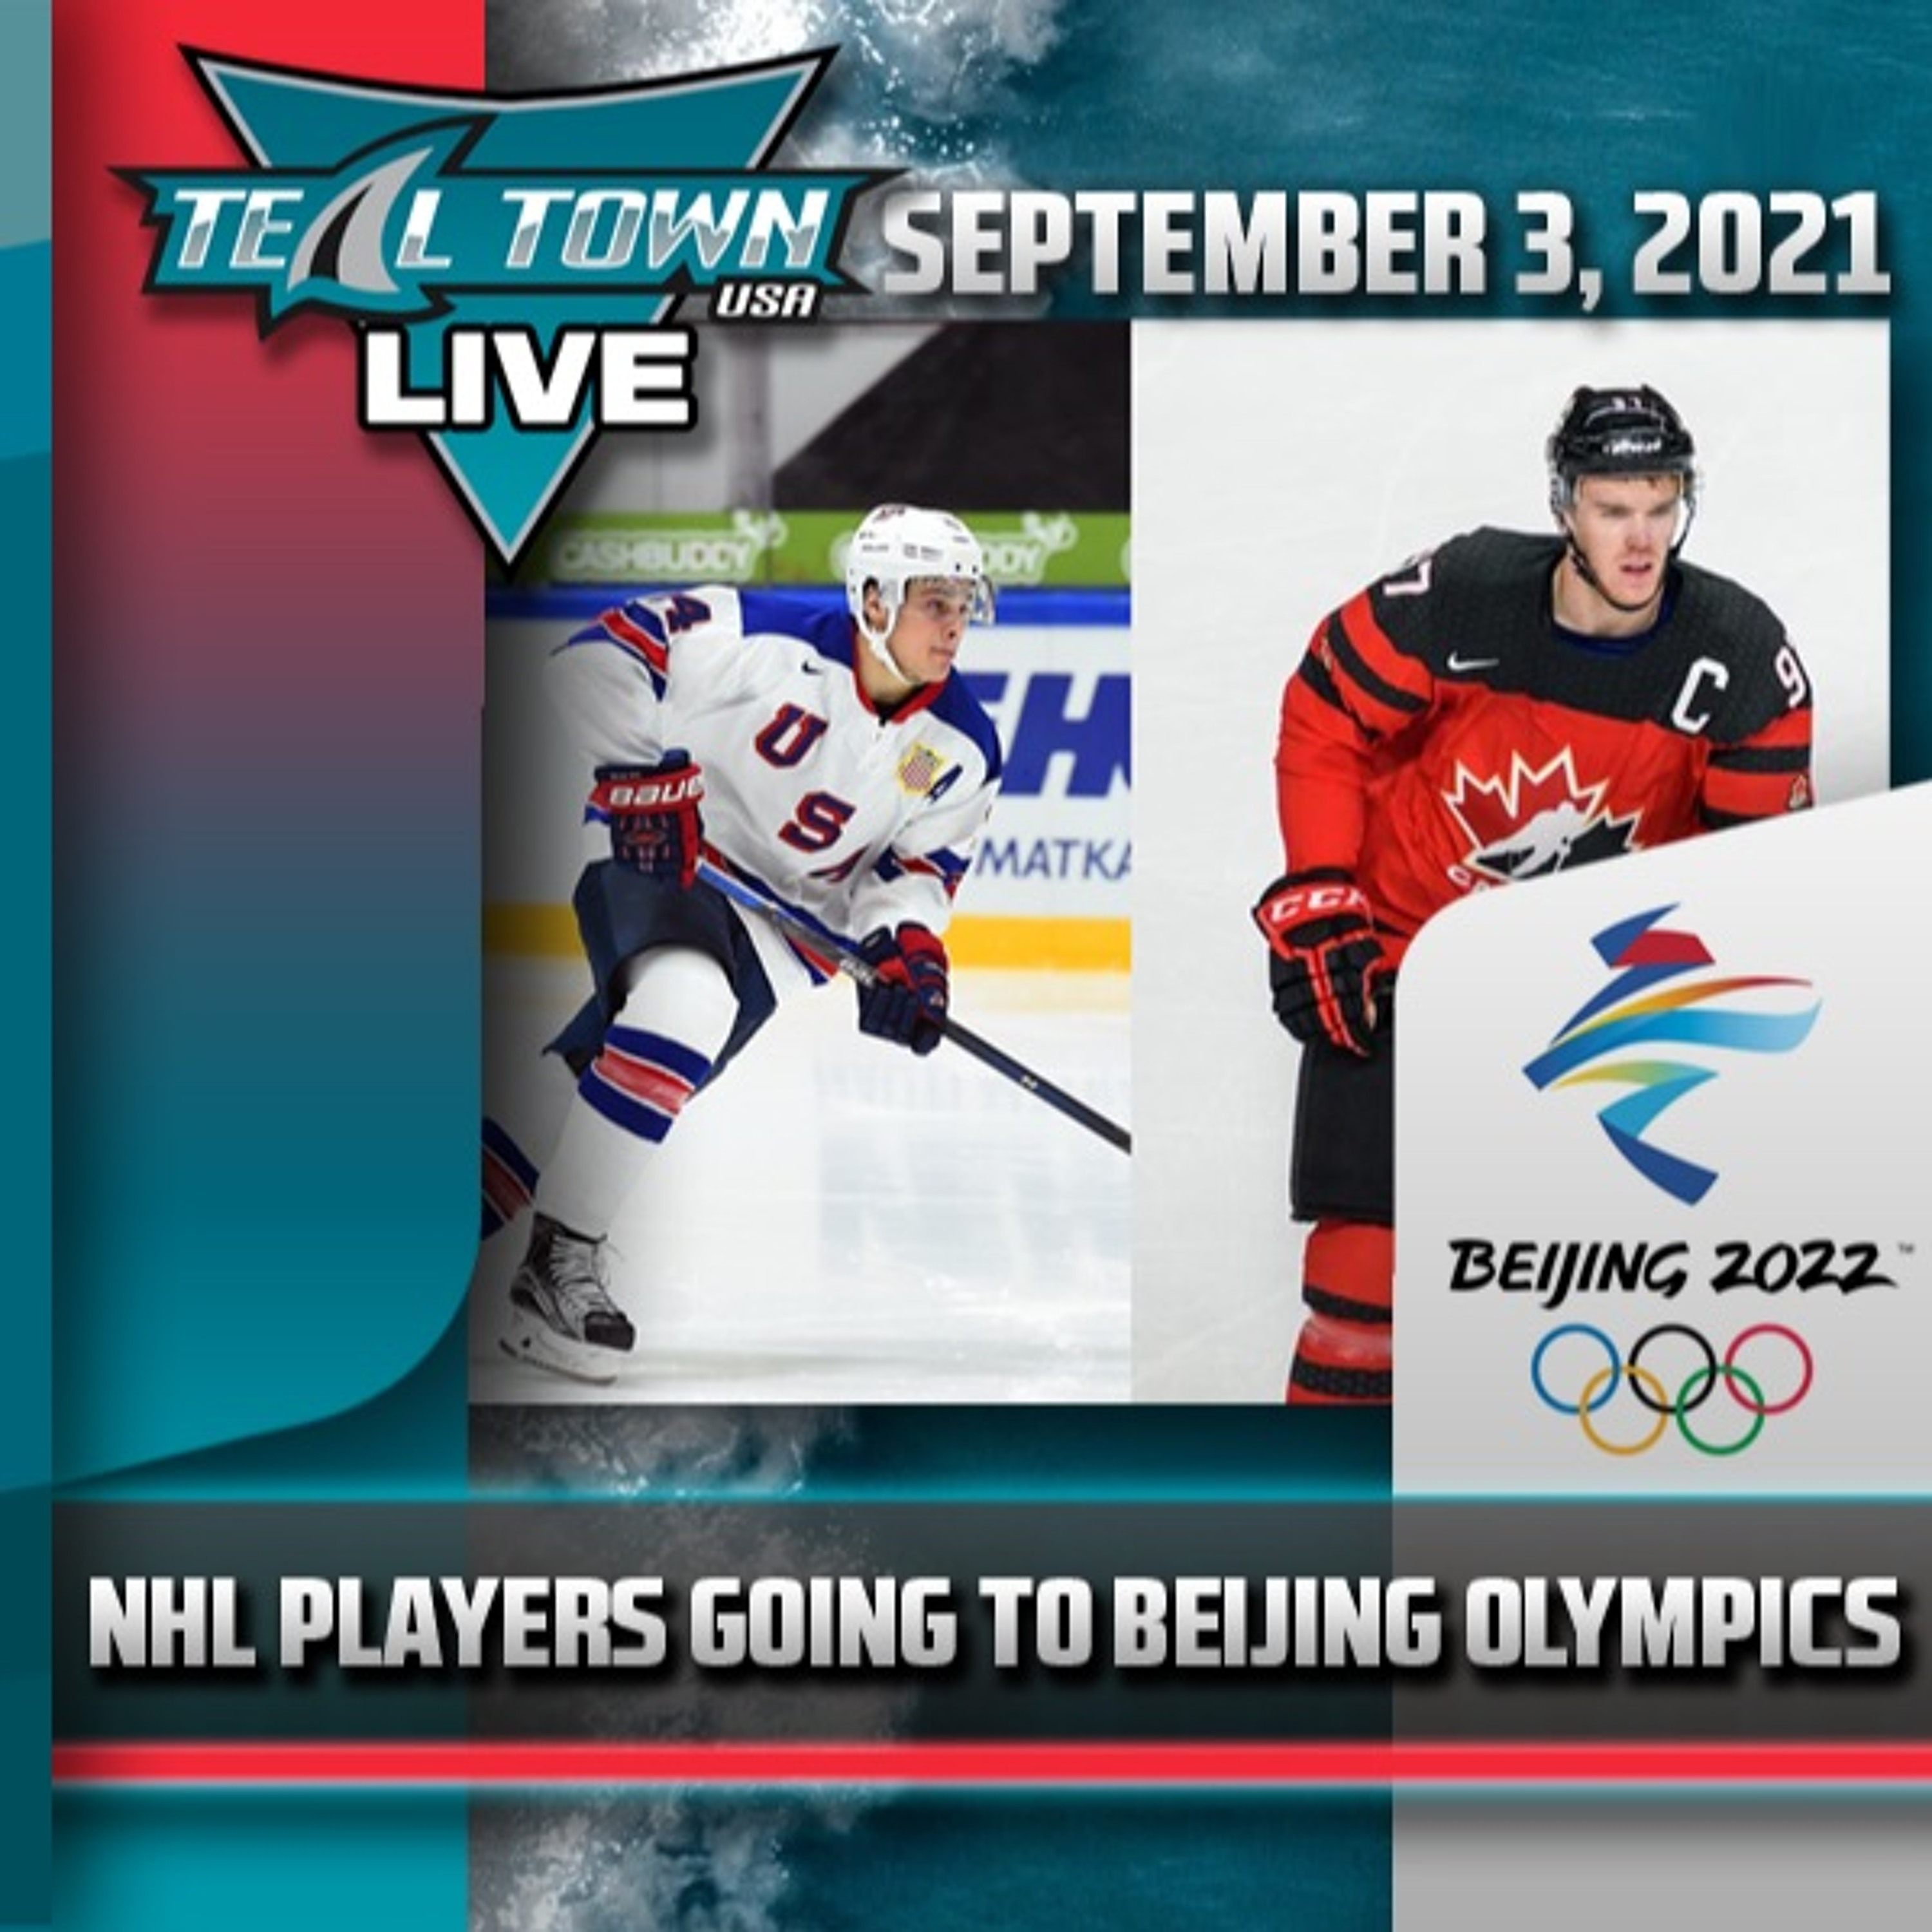 NHL Players to Participate in 2022 Winter Olympic Games - 9/3/2021 - Teal Town USA Live